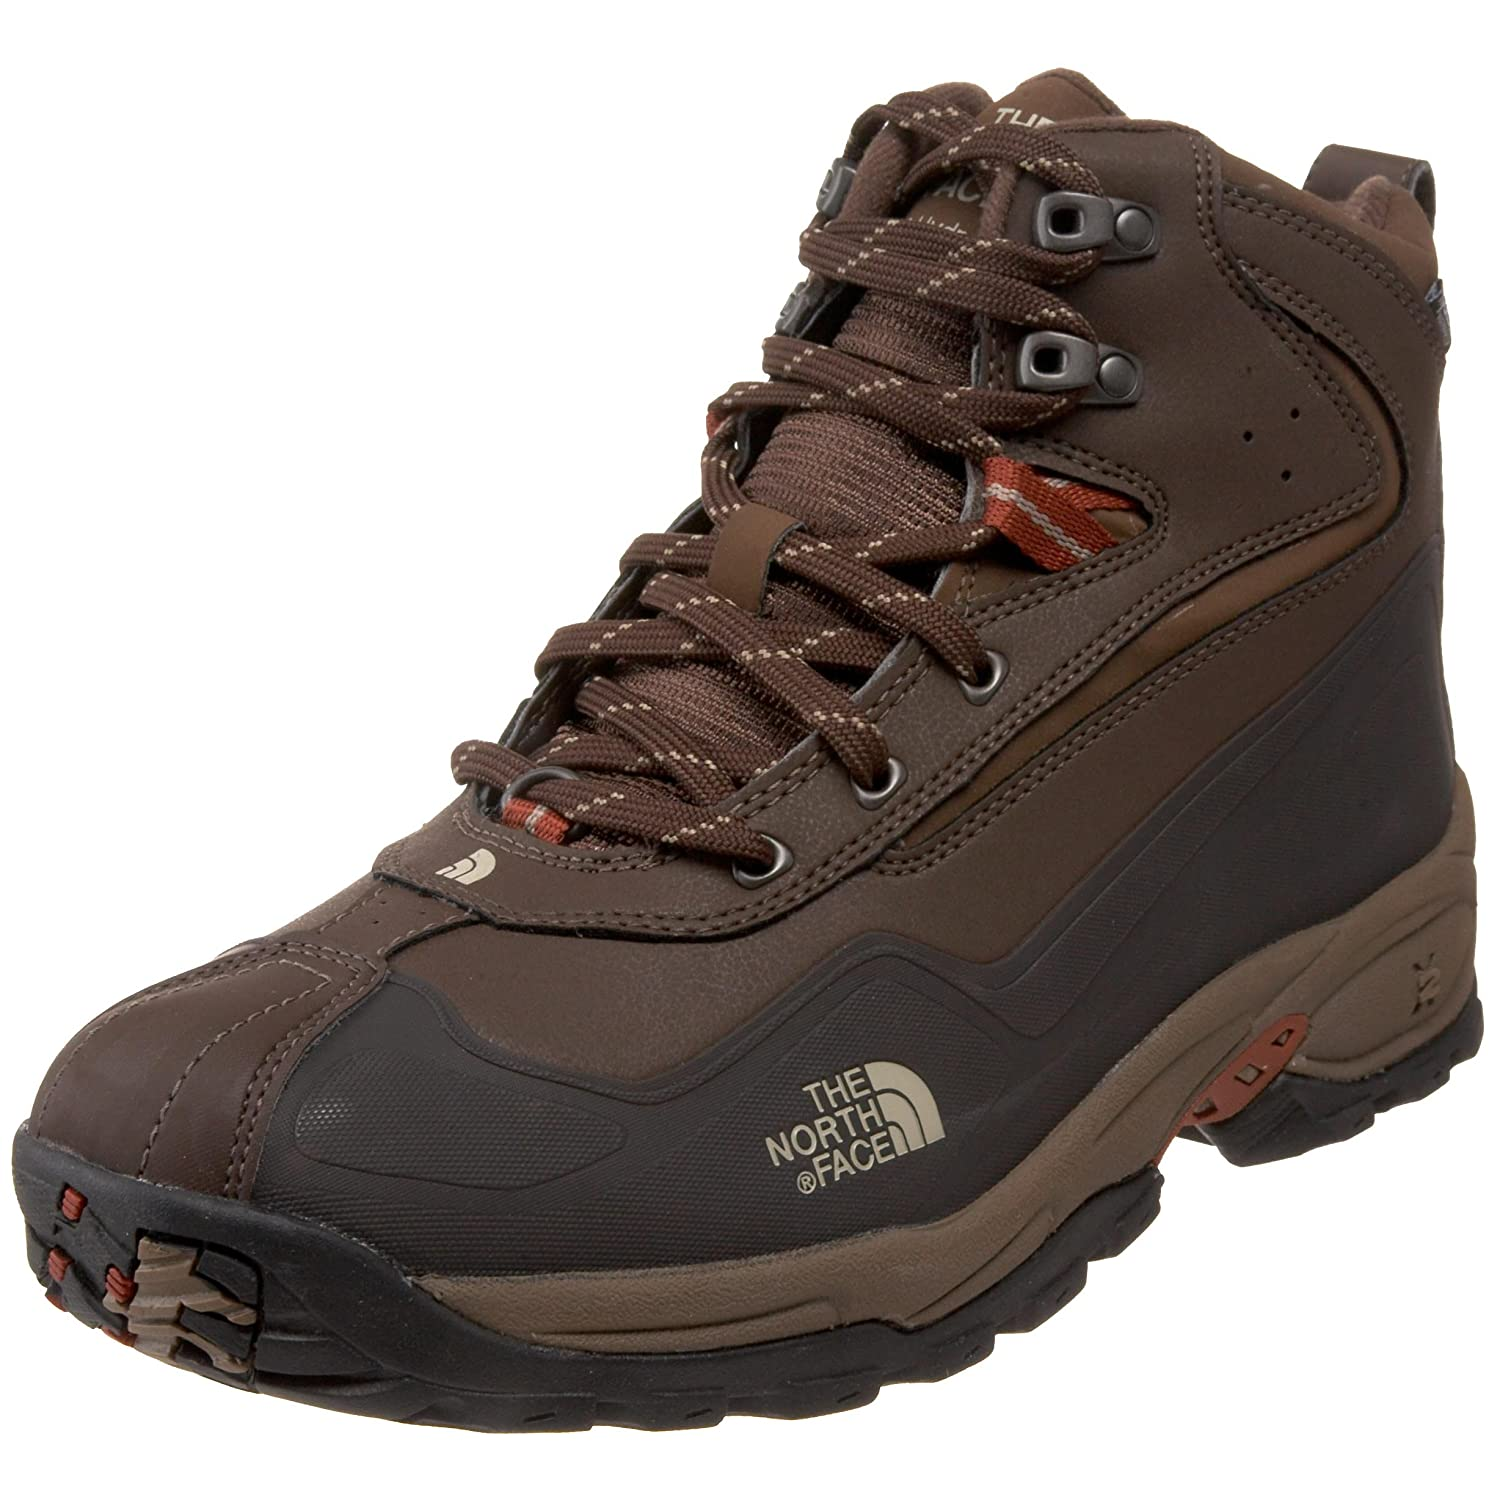 03faaa2cb THE NORTH FACE Men's Flow Chute Short Winter Snow Boots 9.5 Brown ...